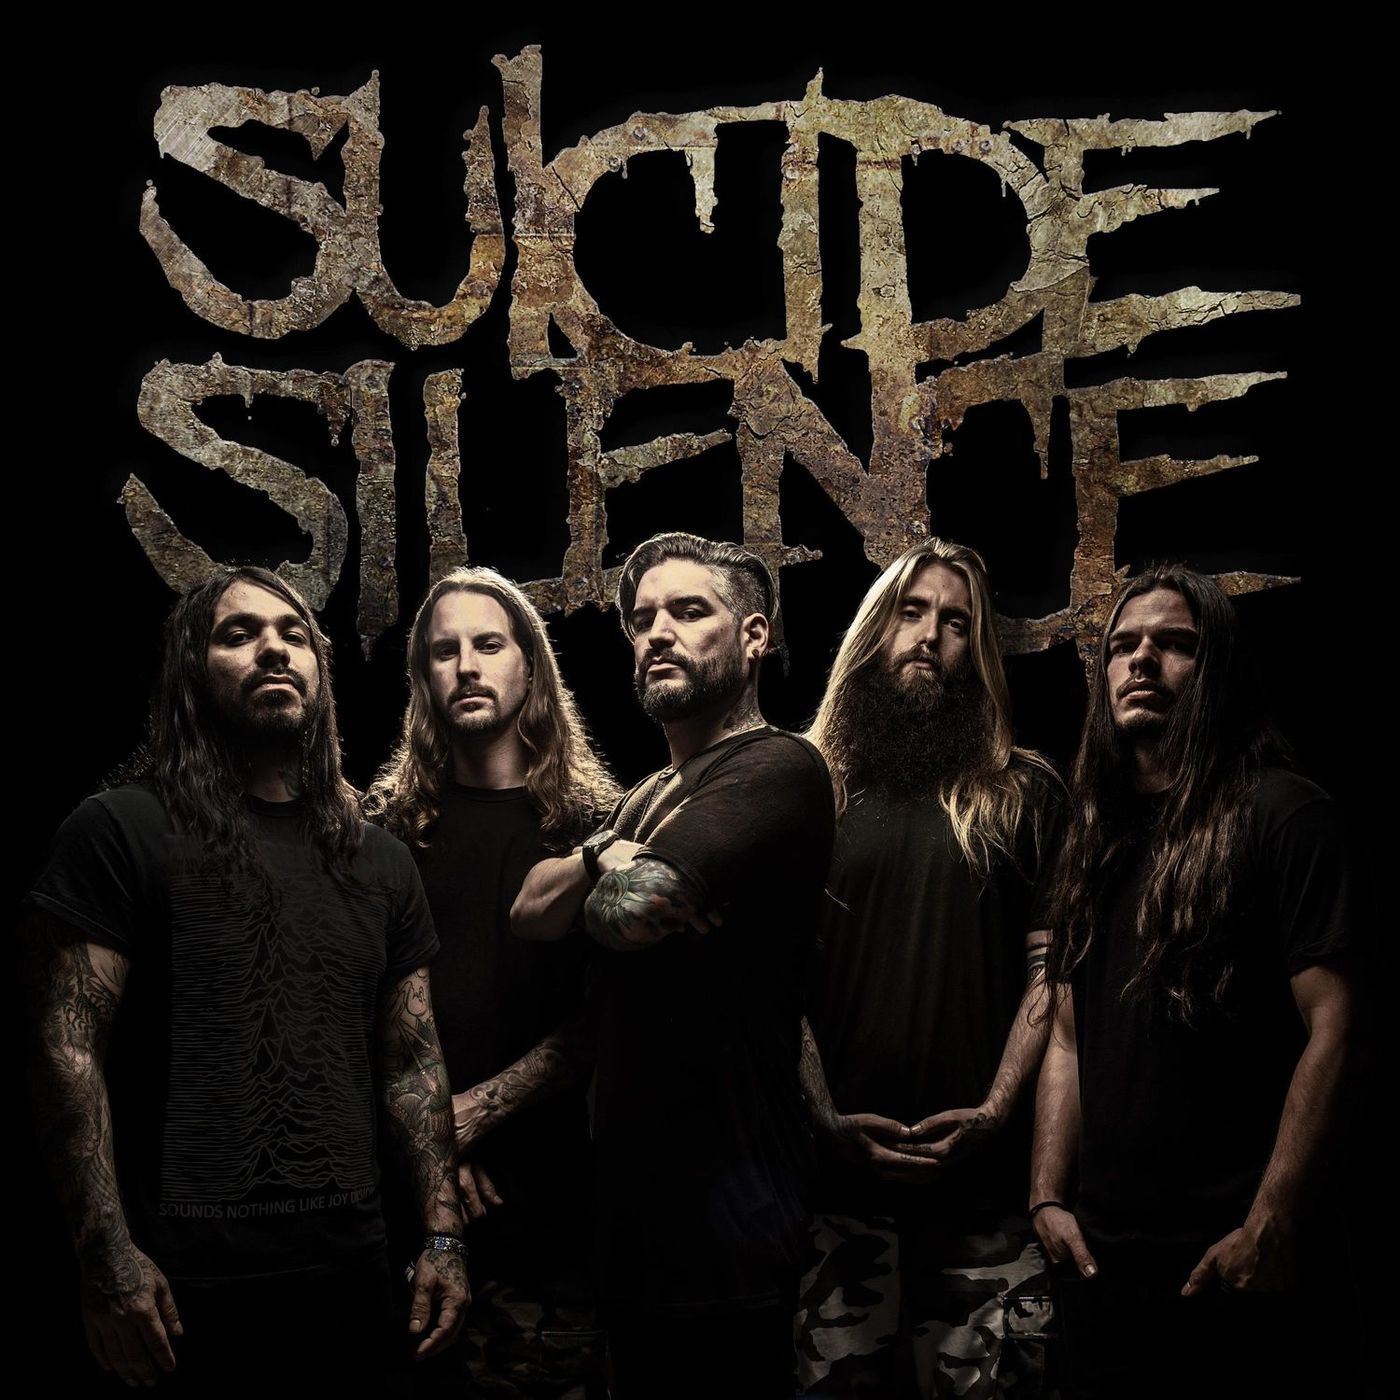 Suicide Silence - Doris [single] (2017)